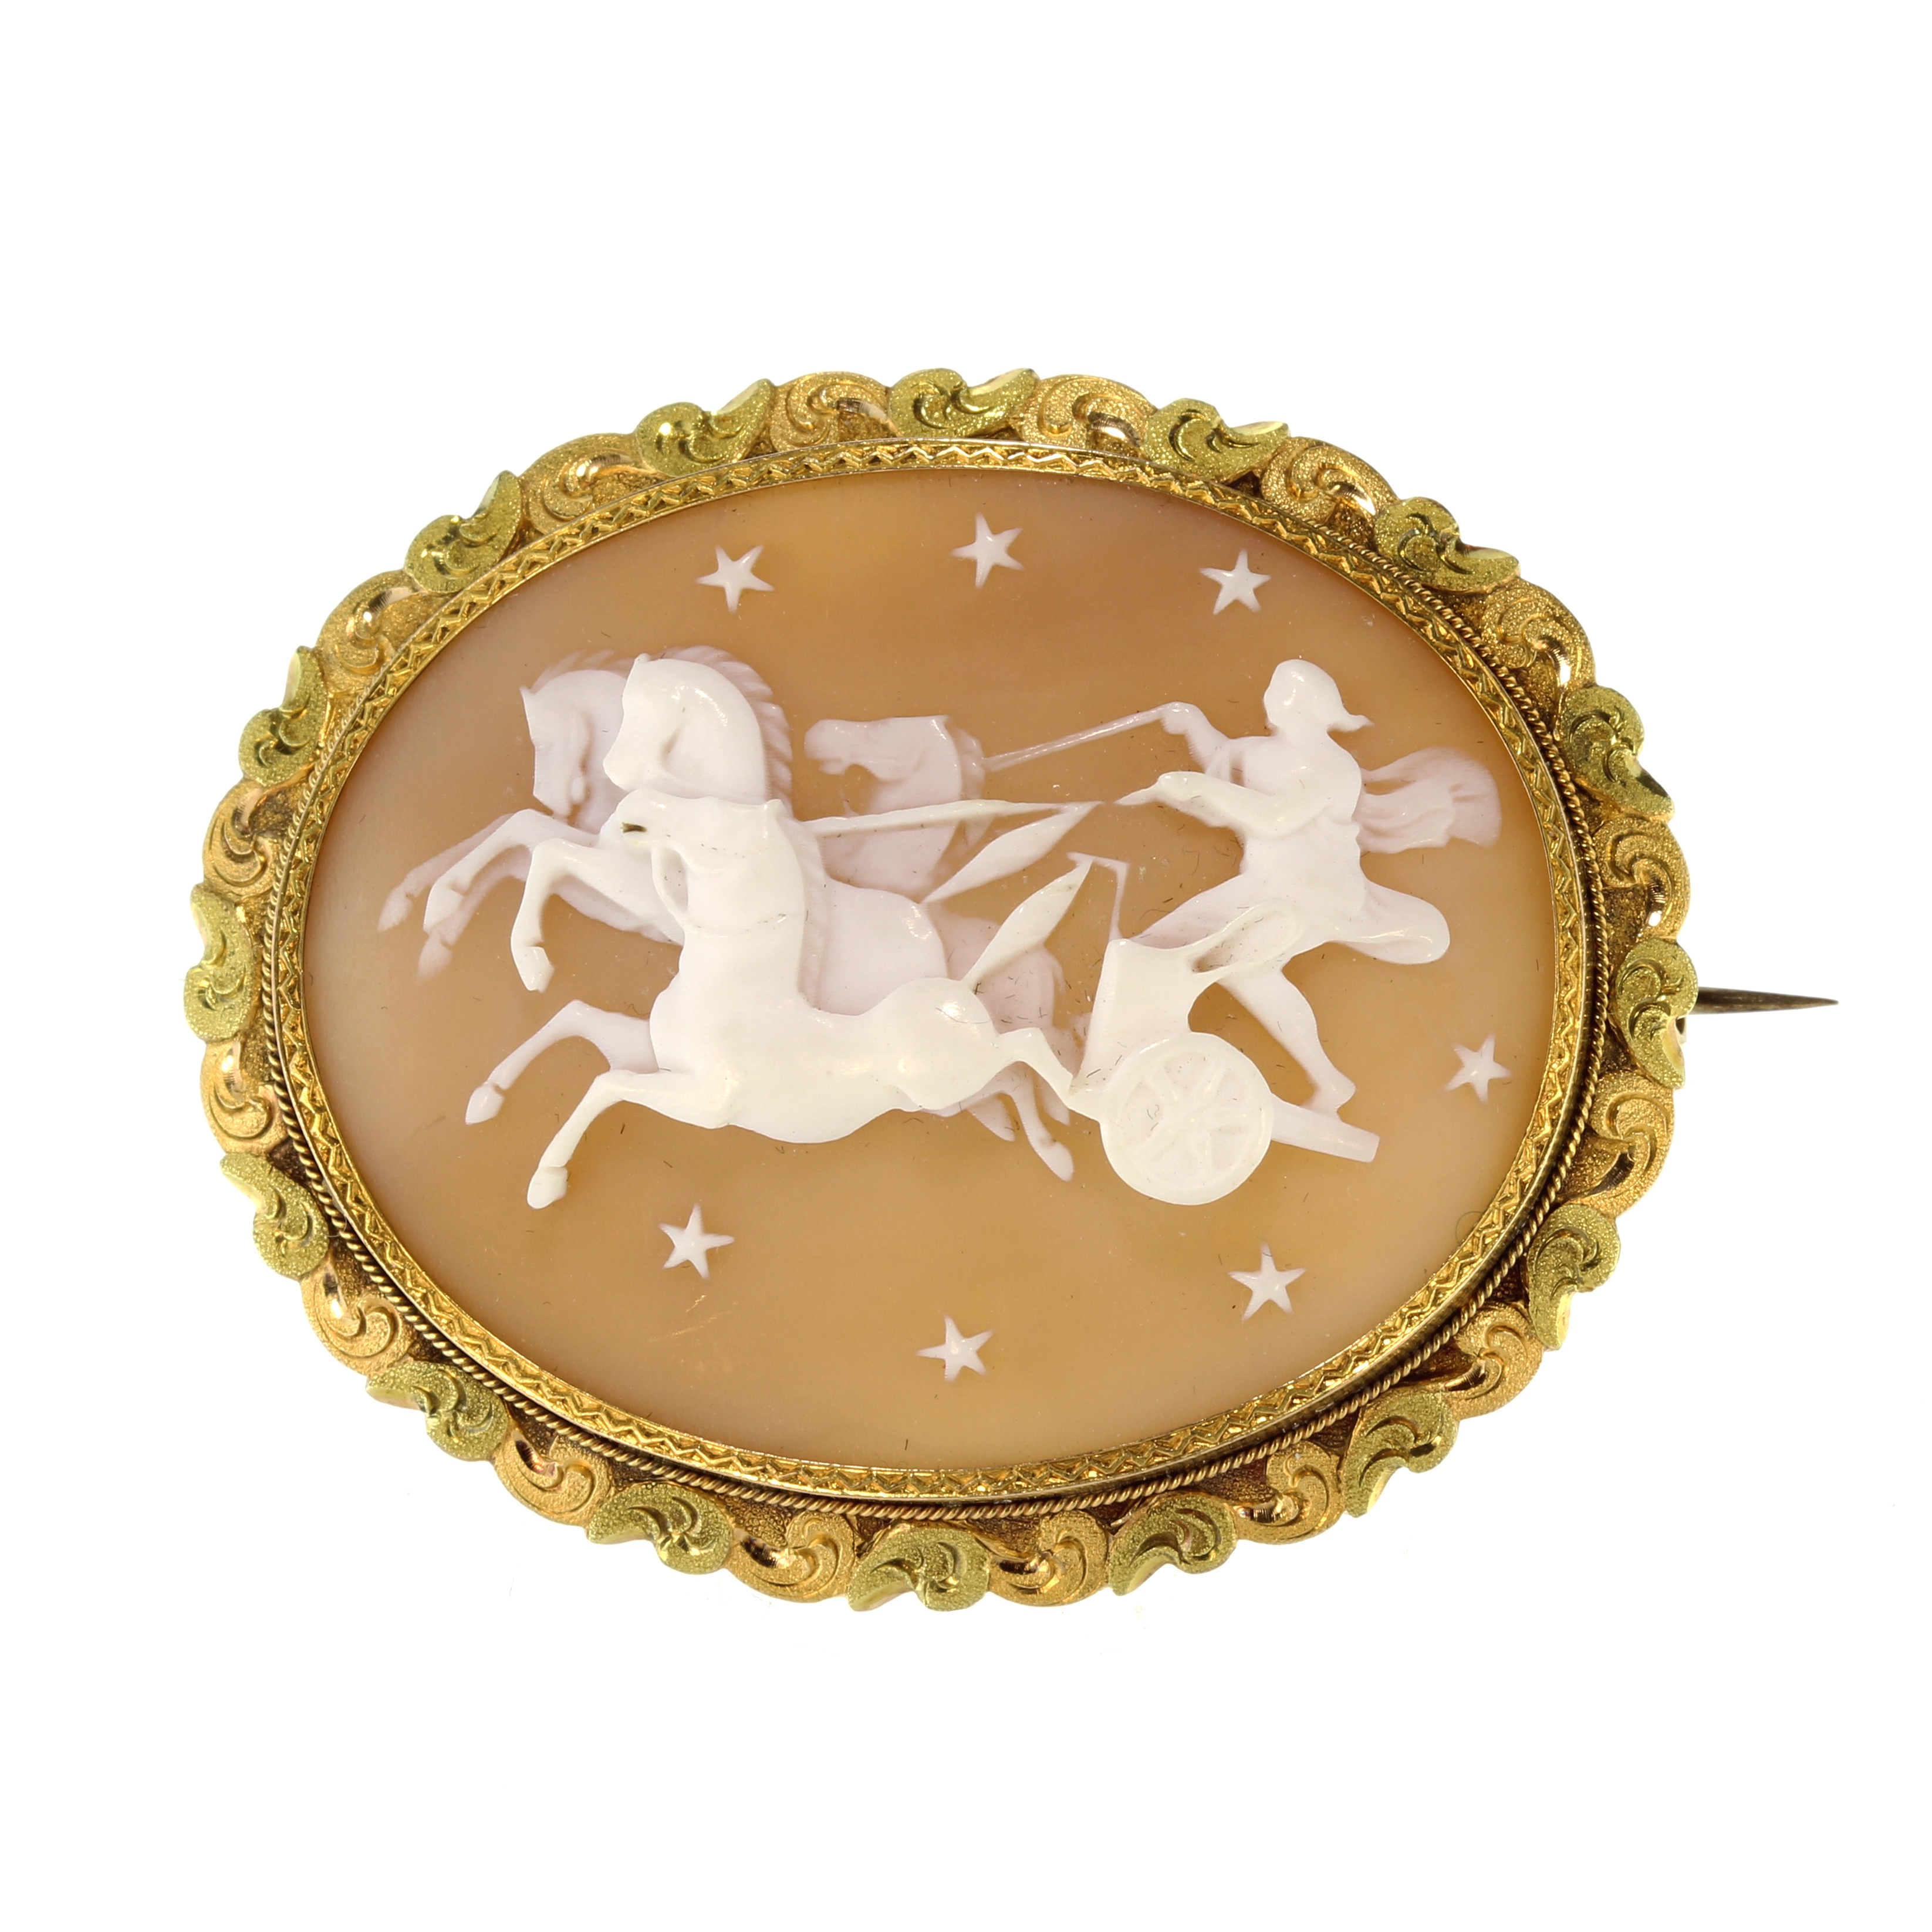 Los 2 - A fine antique carved cameo brooch in high carat two colour gold designed as a large oval cameo